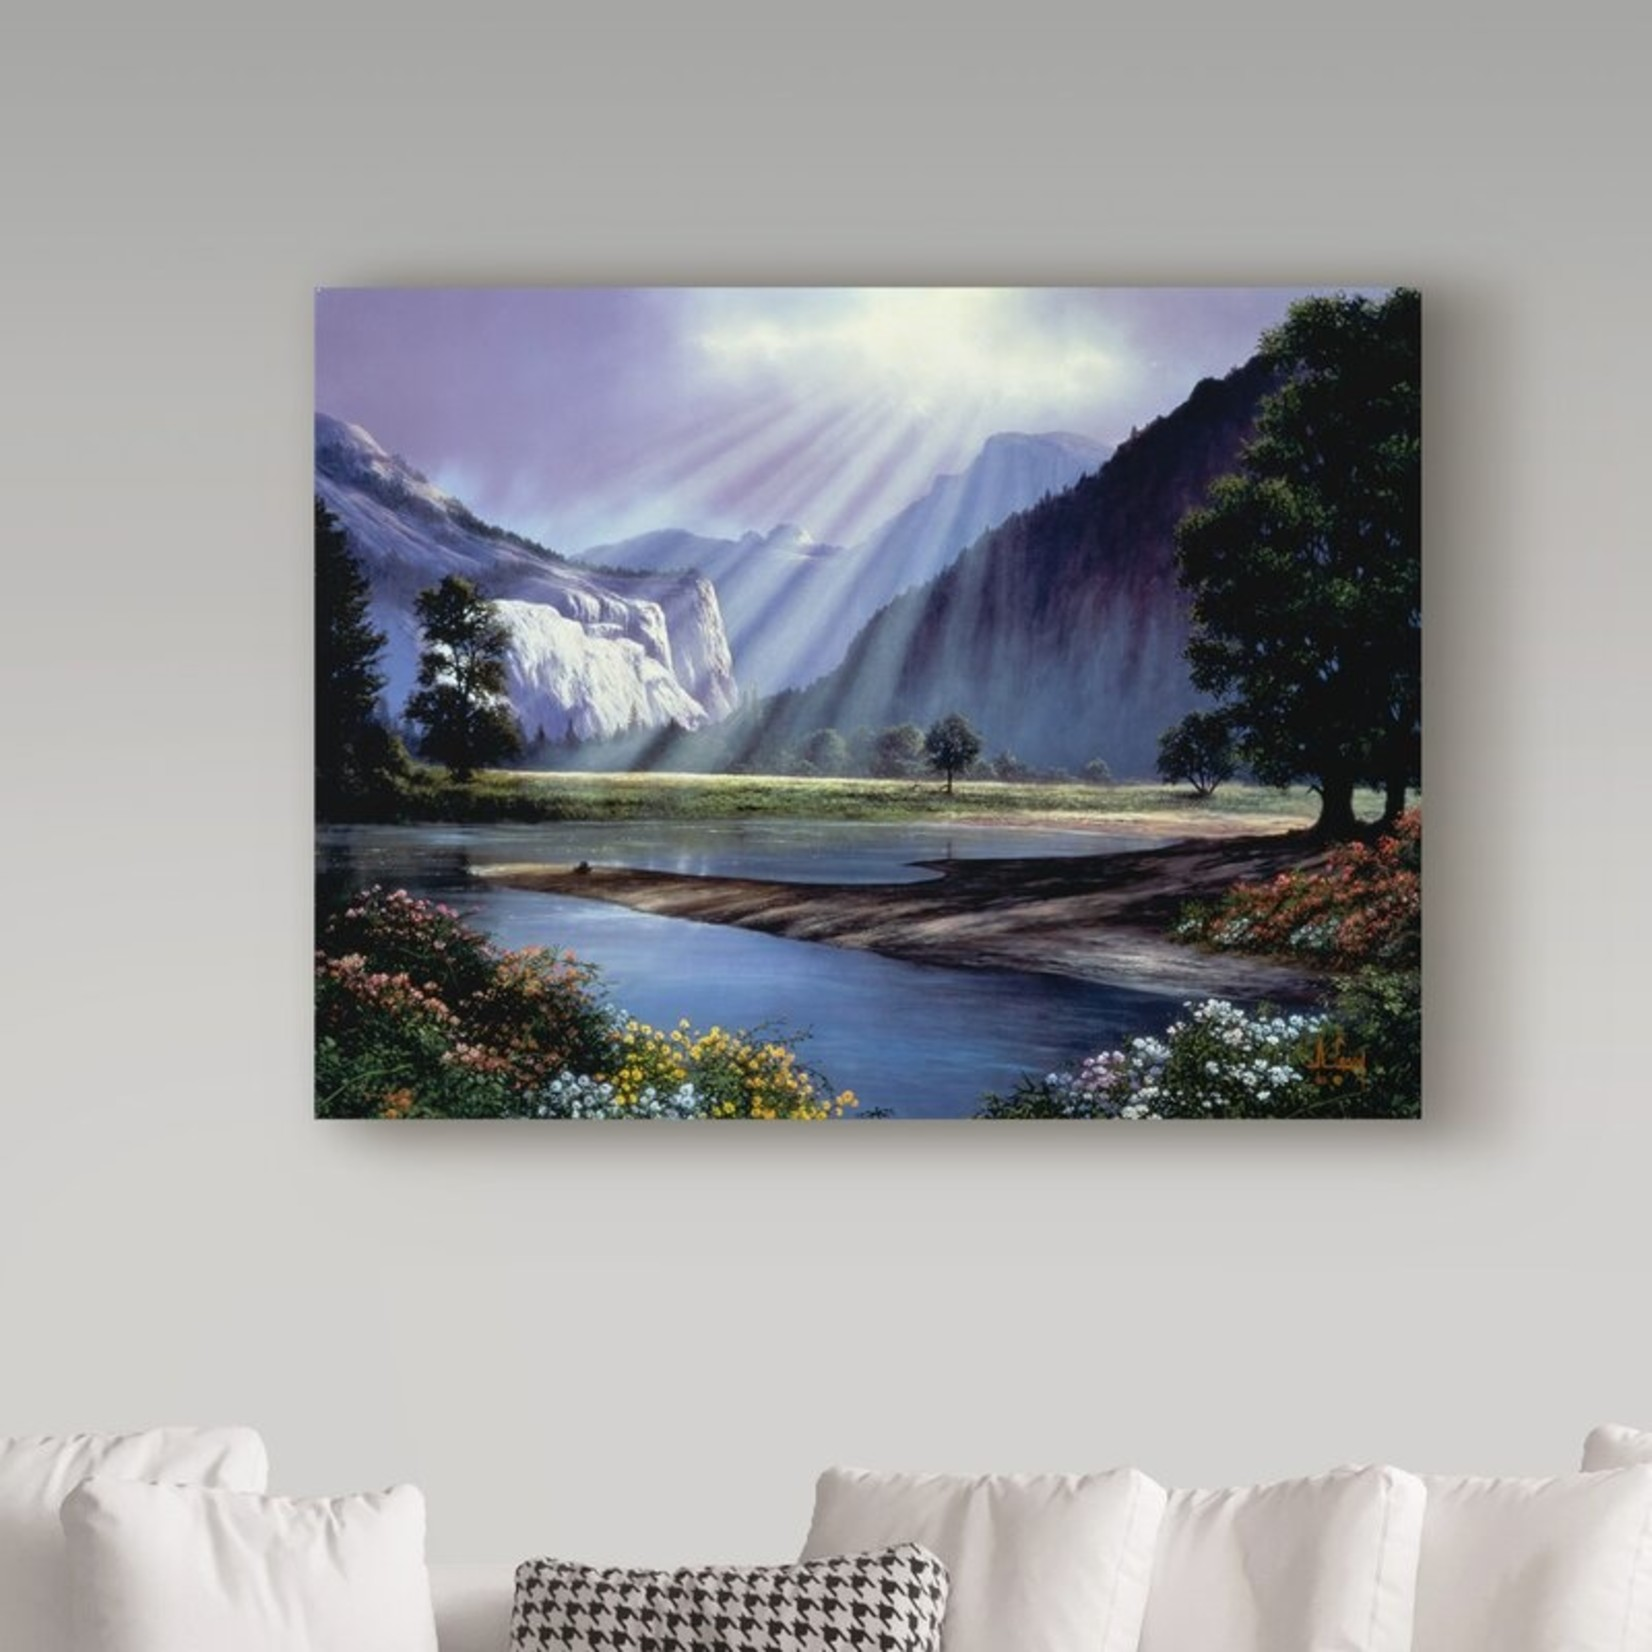 *Light Over Mountain Scene' Oil Painting Print on Wrapped Canvas